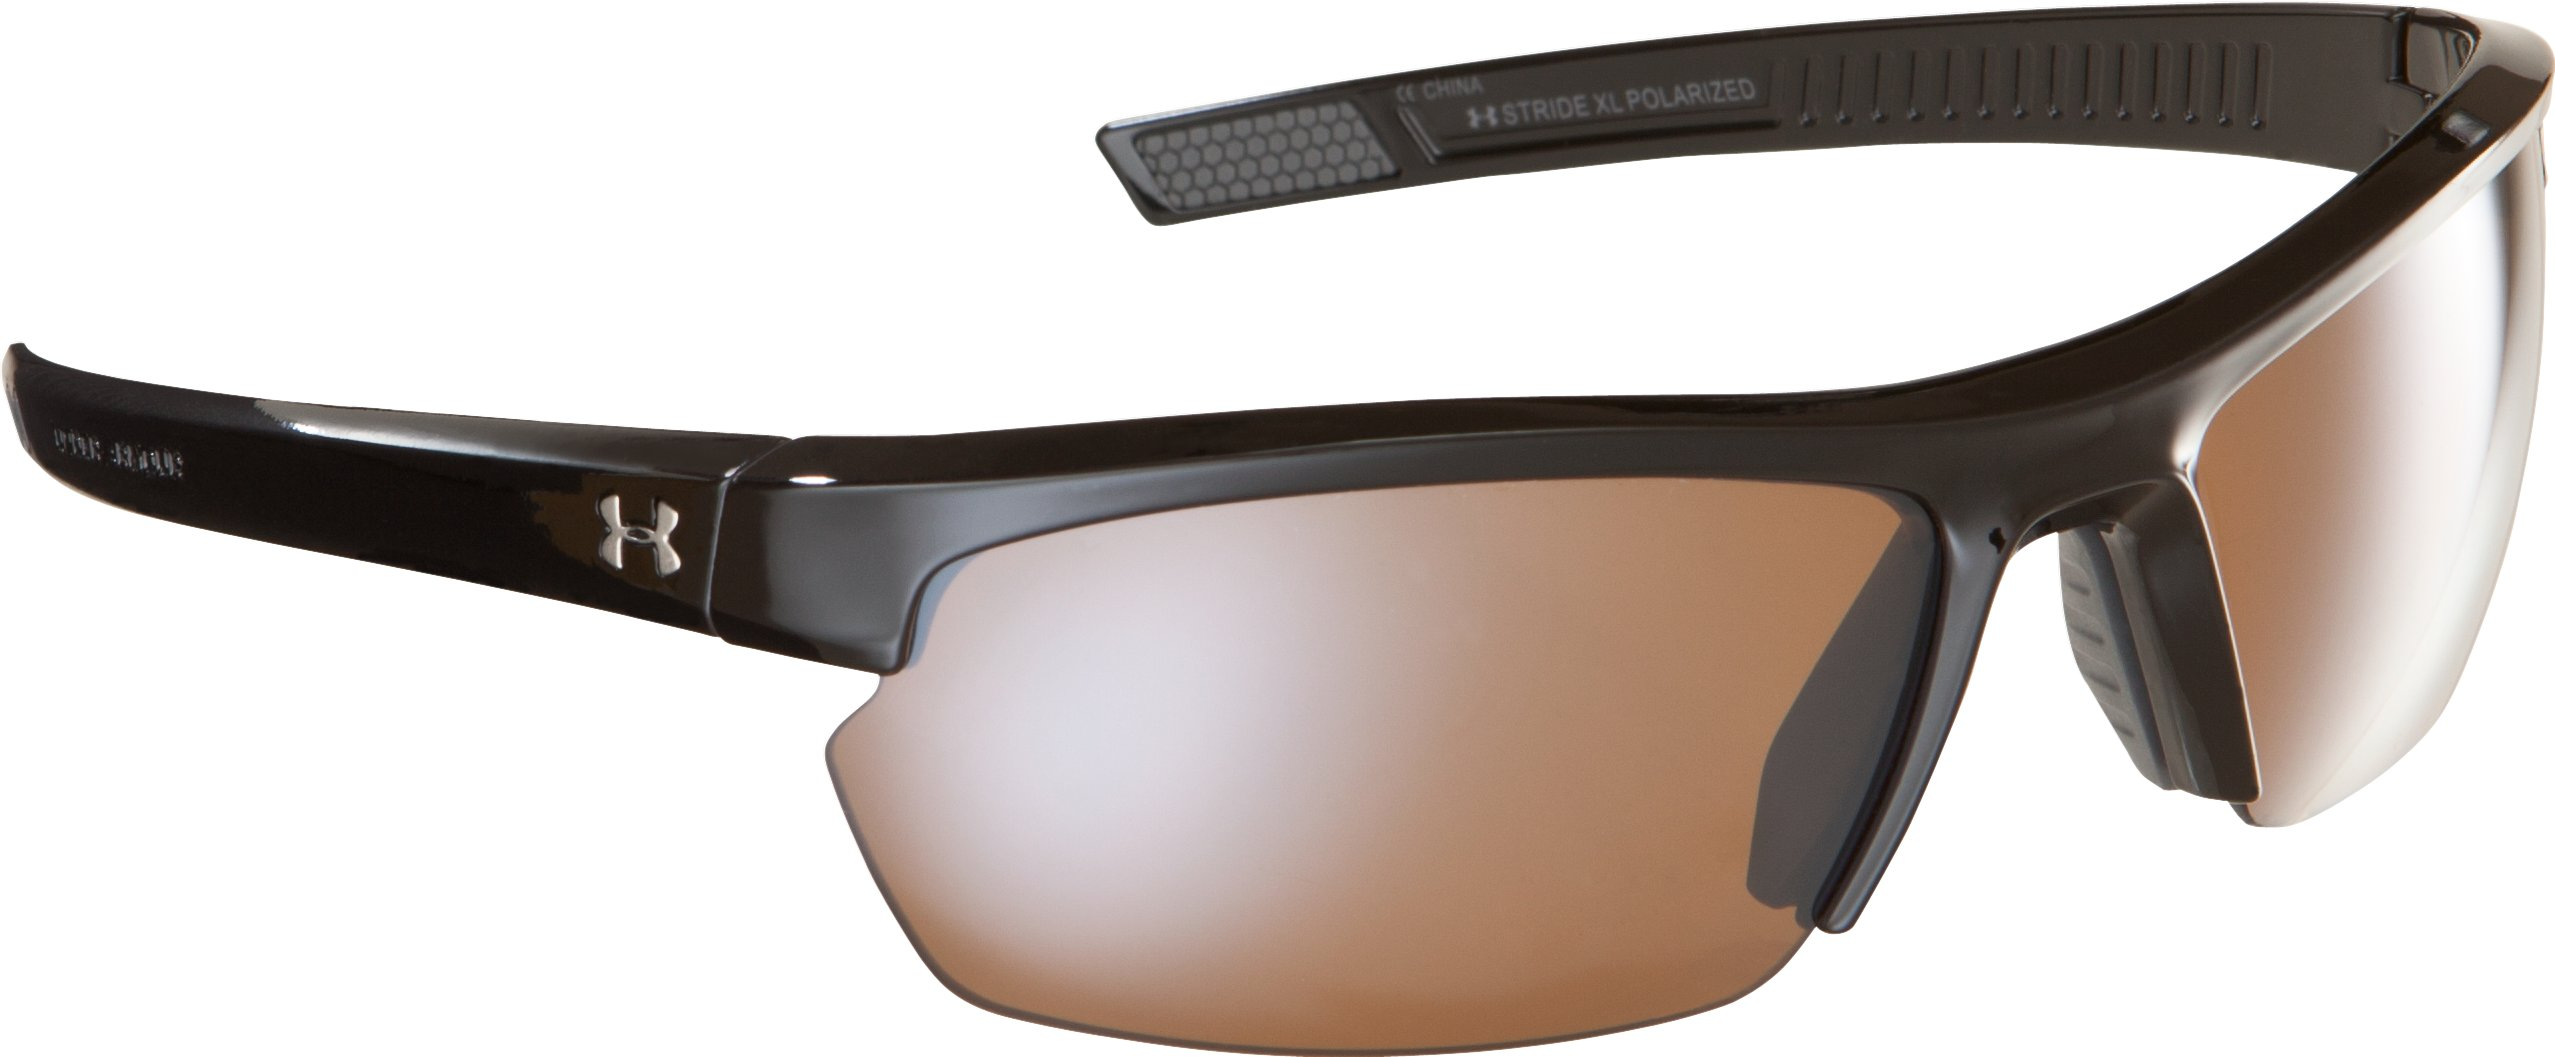 UA Stride XL Polarized Sunglasses, Shiny Black,